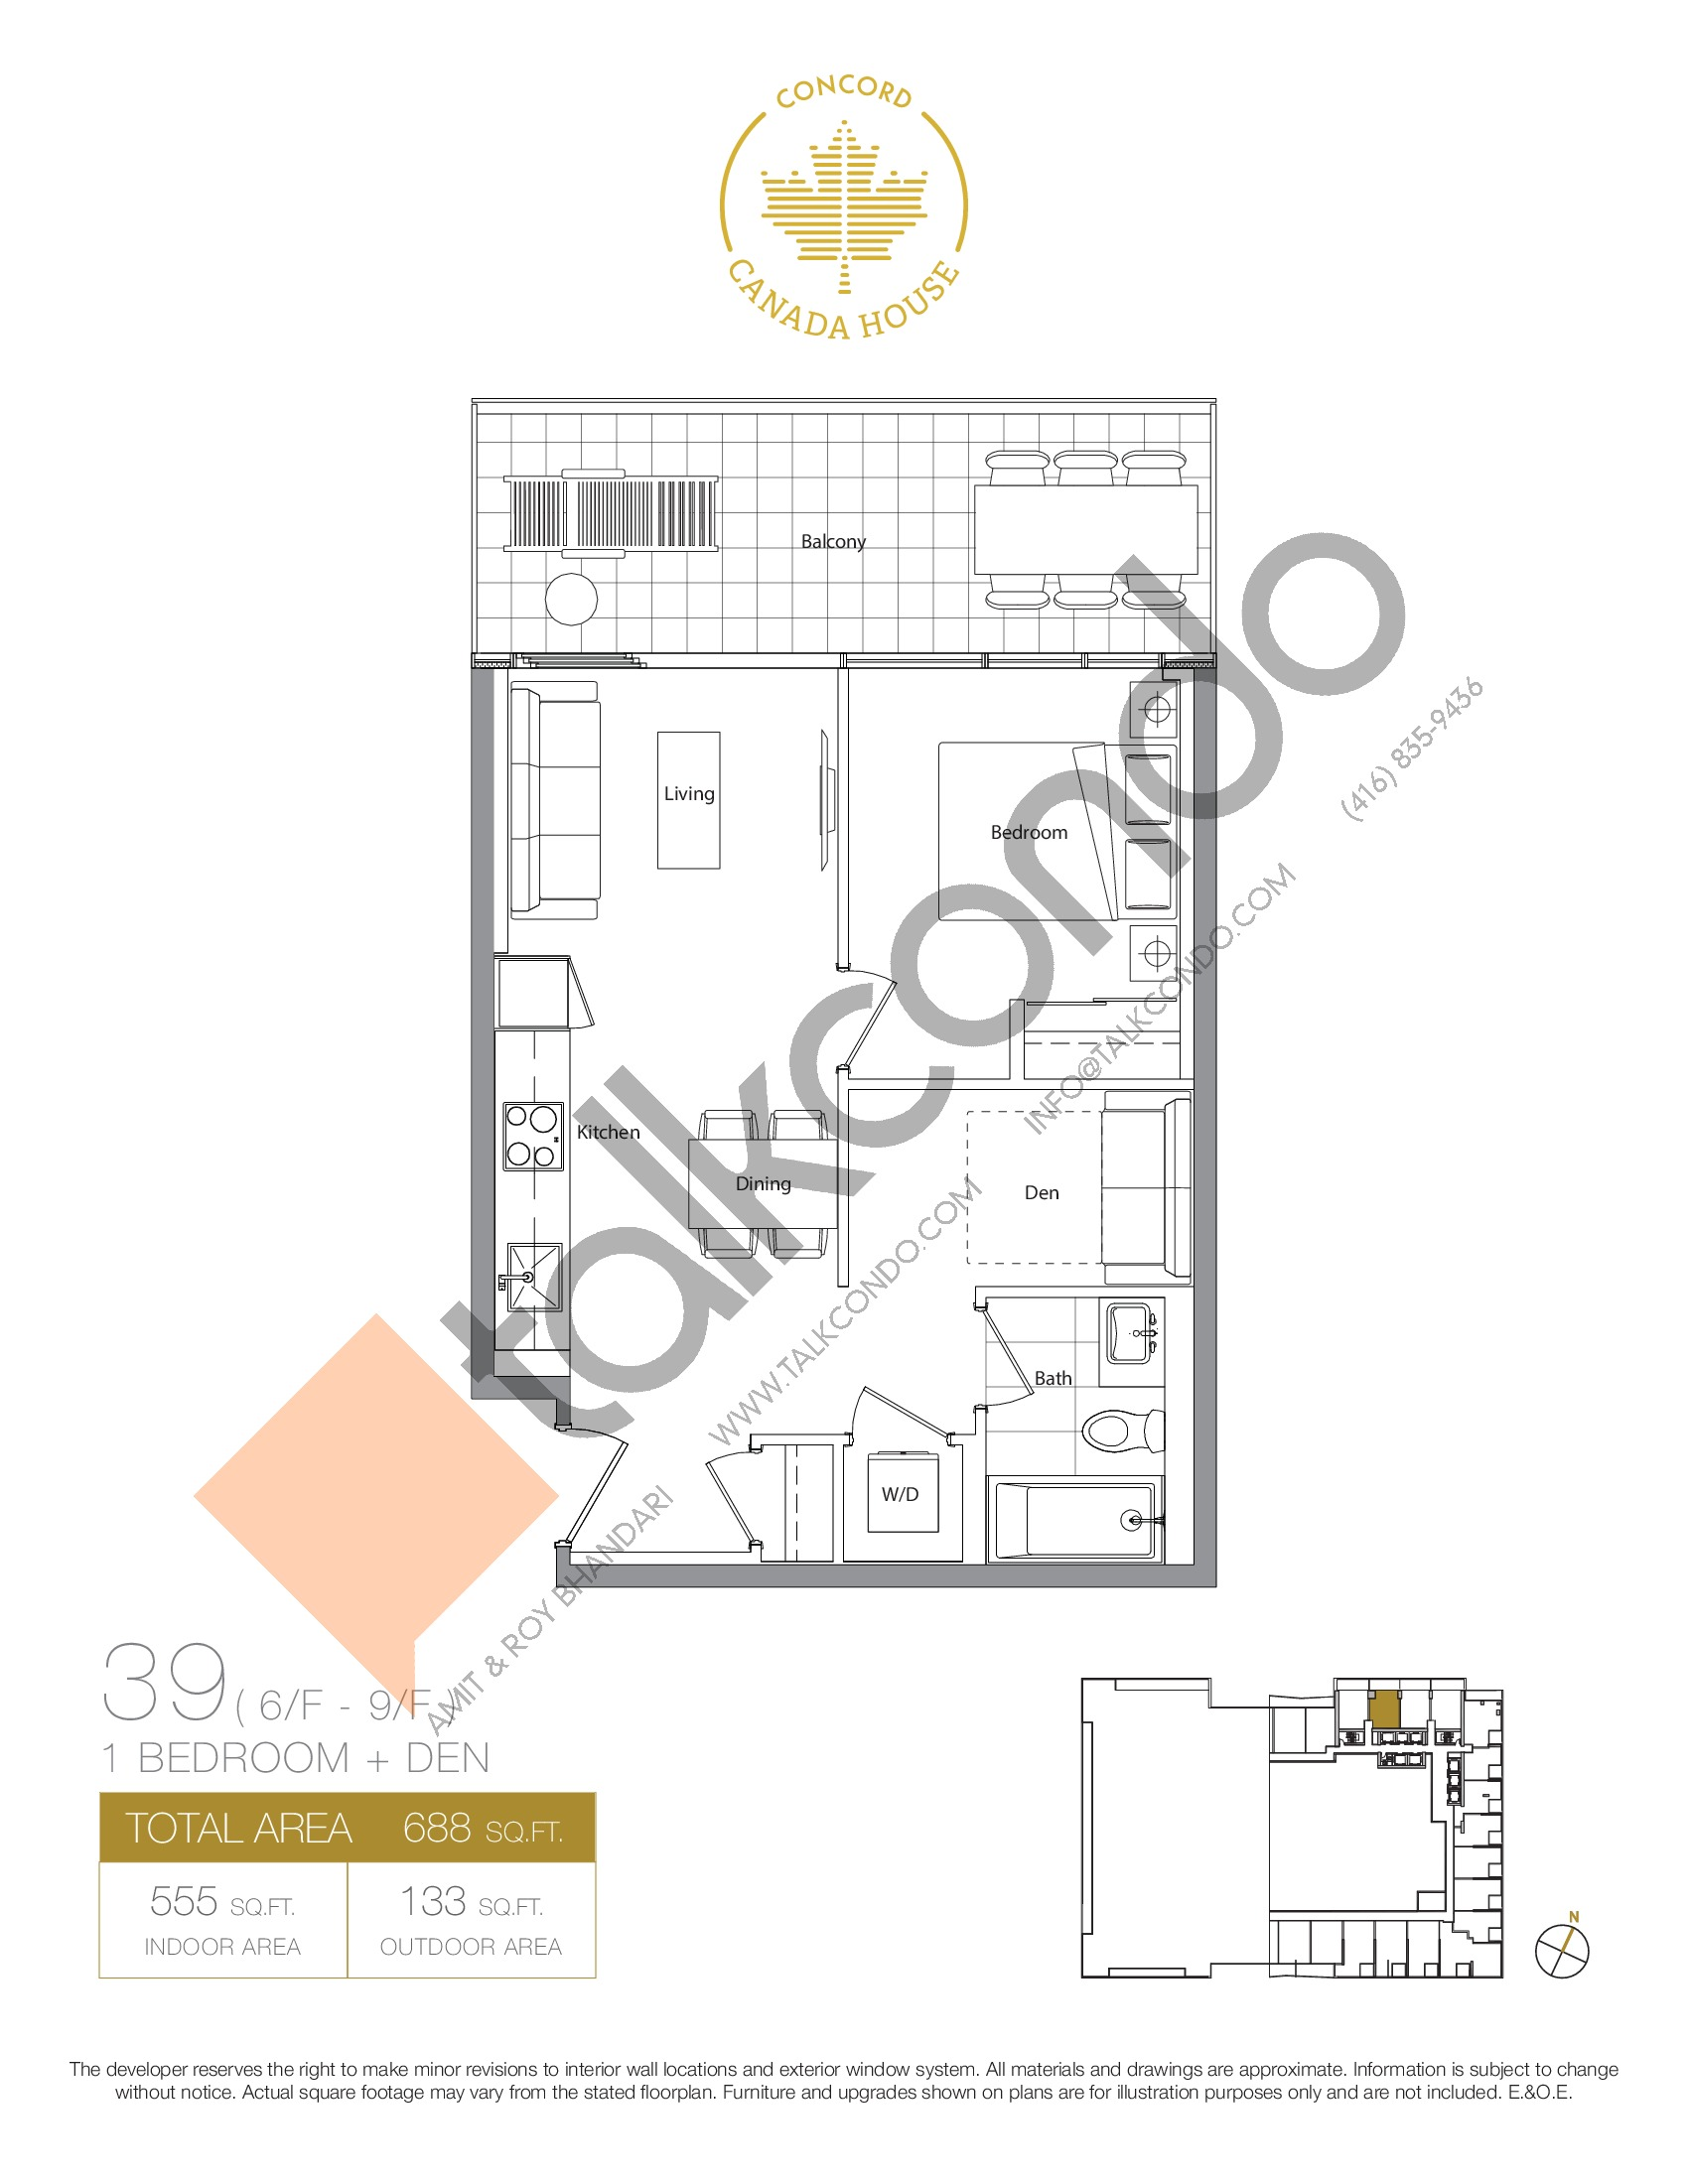 39 - East Tower Floor Plan at Concord Canada House Condos - 555 sq.ft